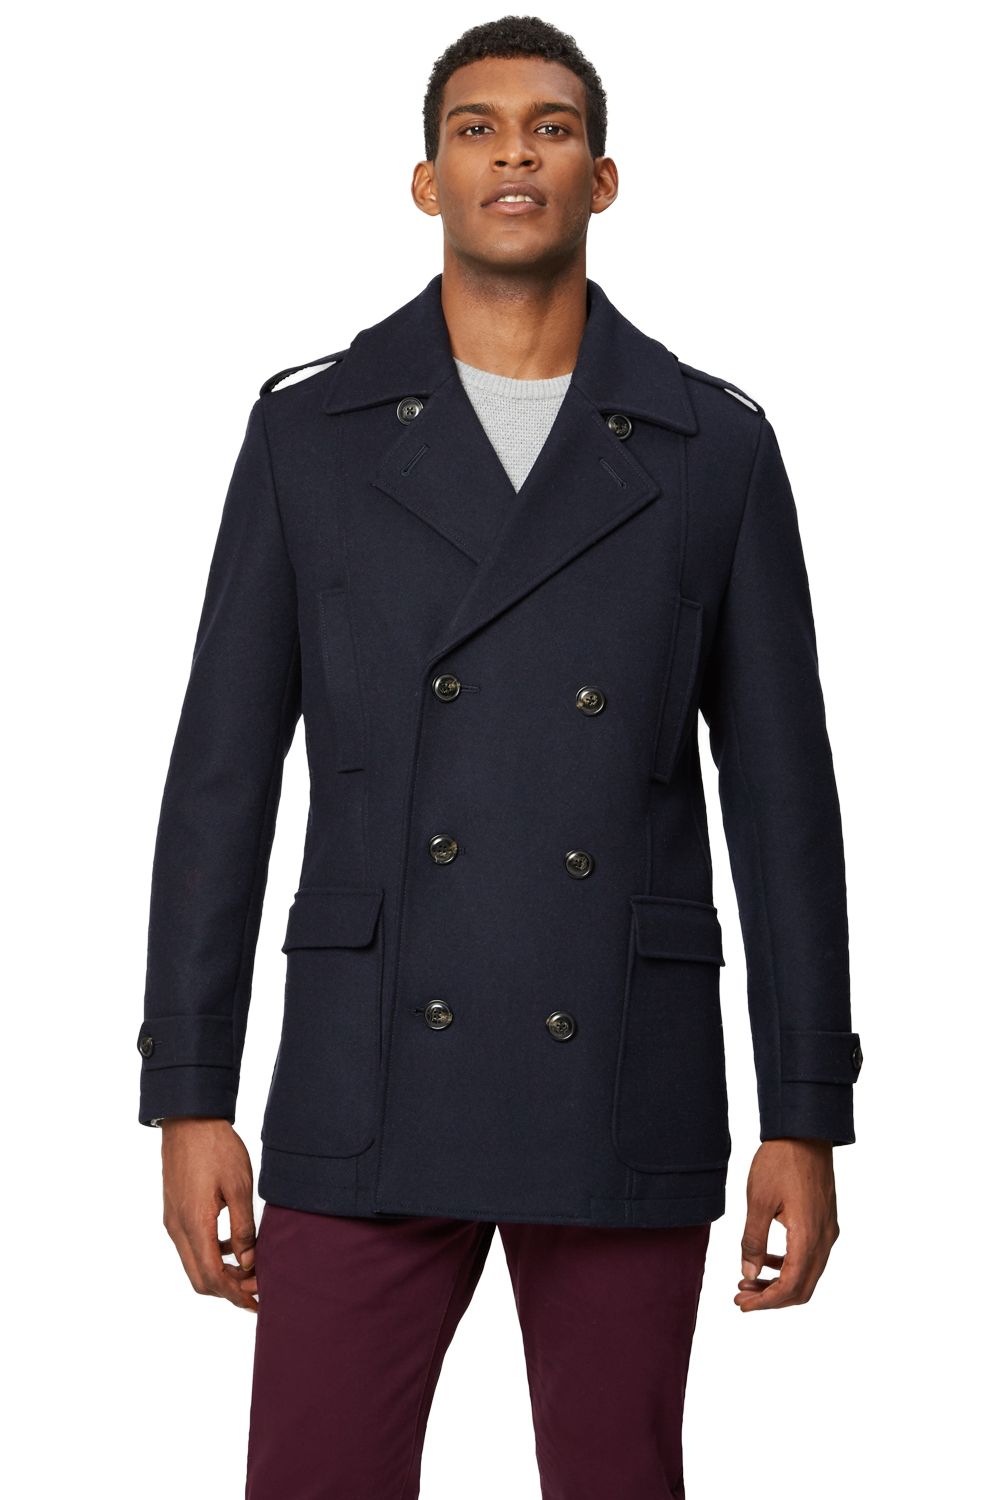 23a4b389f859 Moss 1851 Mens Tailored Fit Navy Blue Pea Coat Double Breasted Winter Jacket